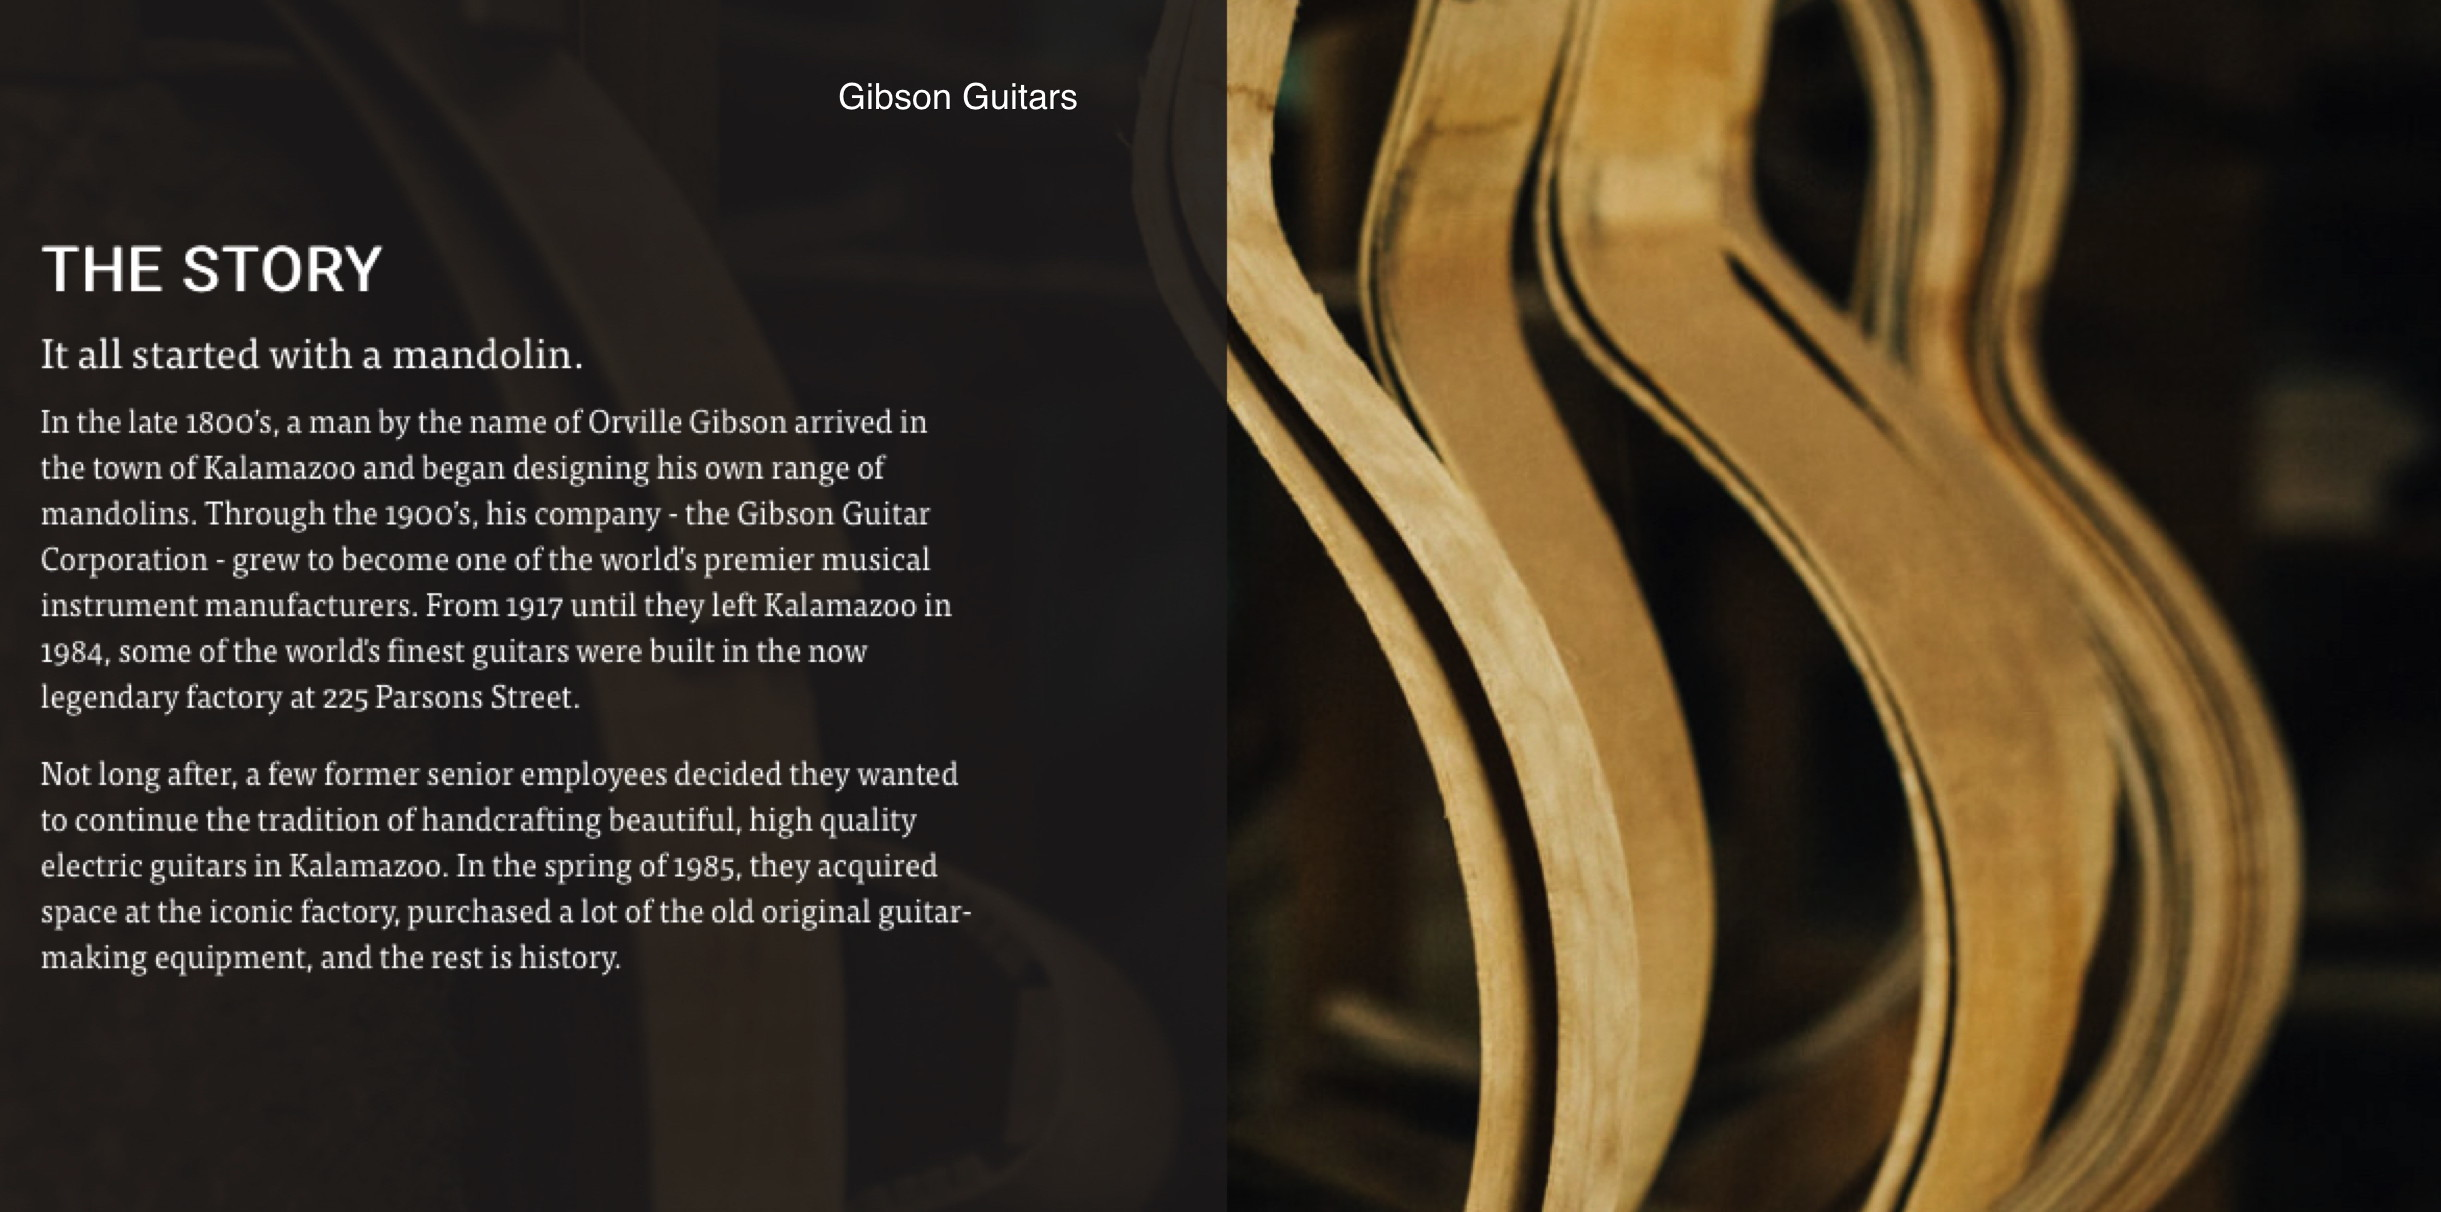 DId you know that Kalamazoo is the home of gibson guitars